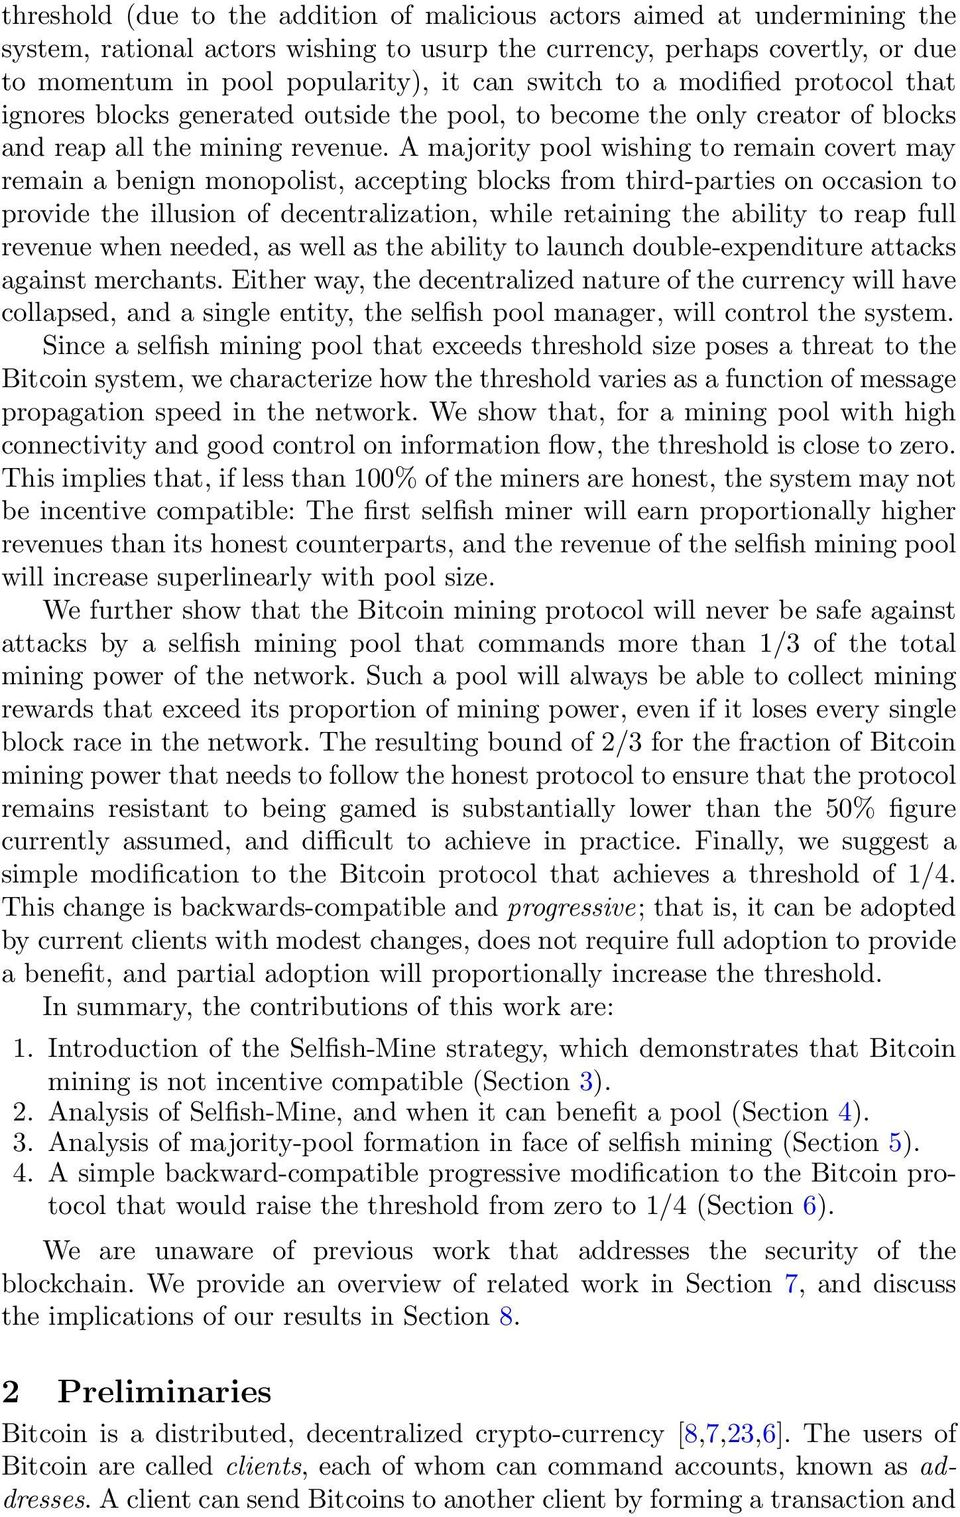 A majority pool wishing to remain covert may remain a benign monopolist, accepting blocks from third-parties on occasion to provide the illusion of decentralization, while retaining the ability to